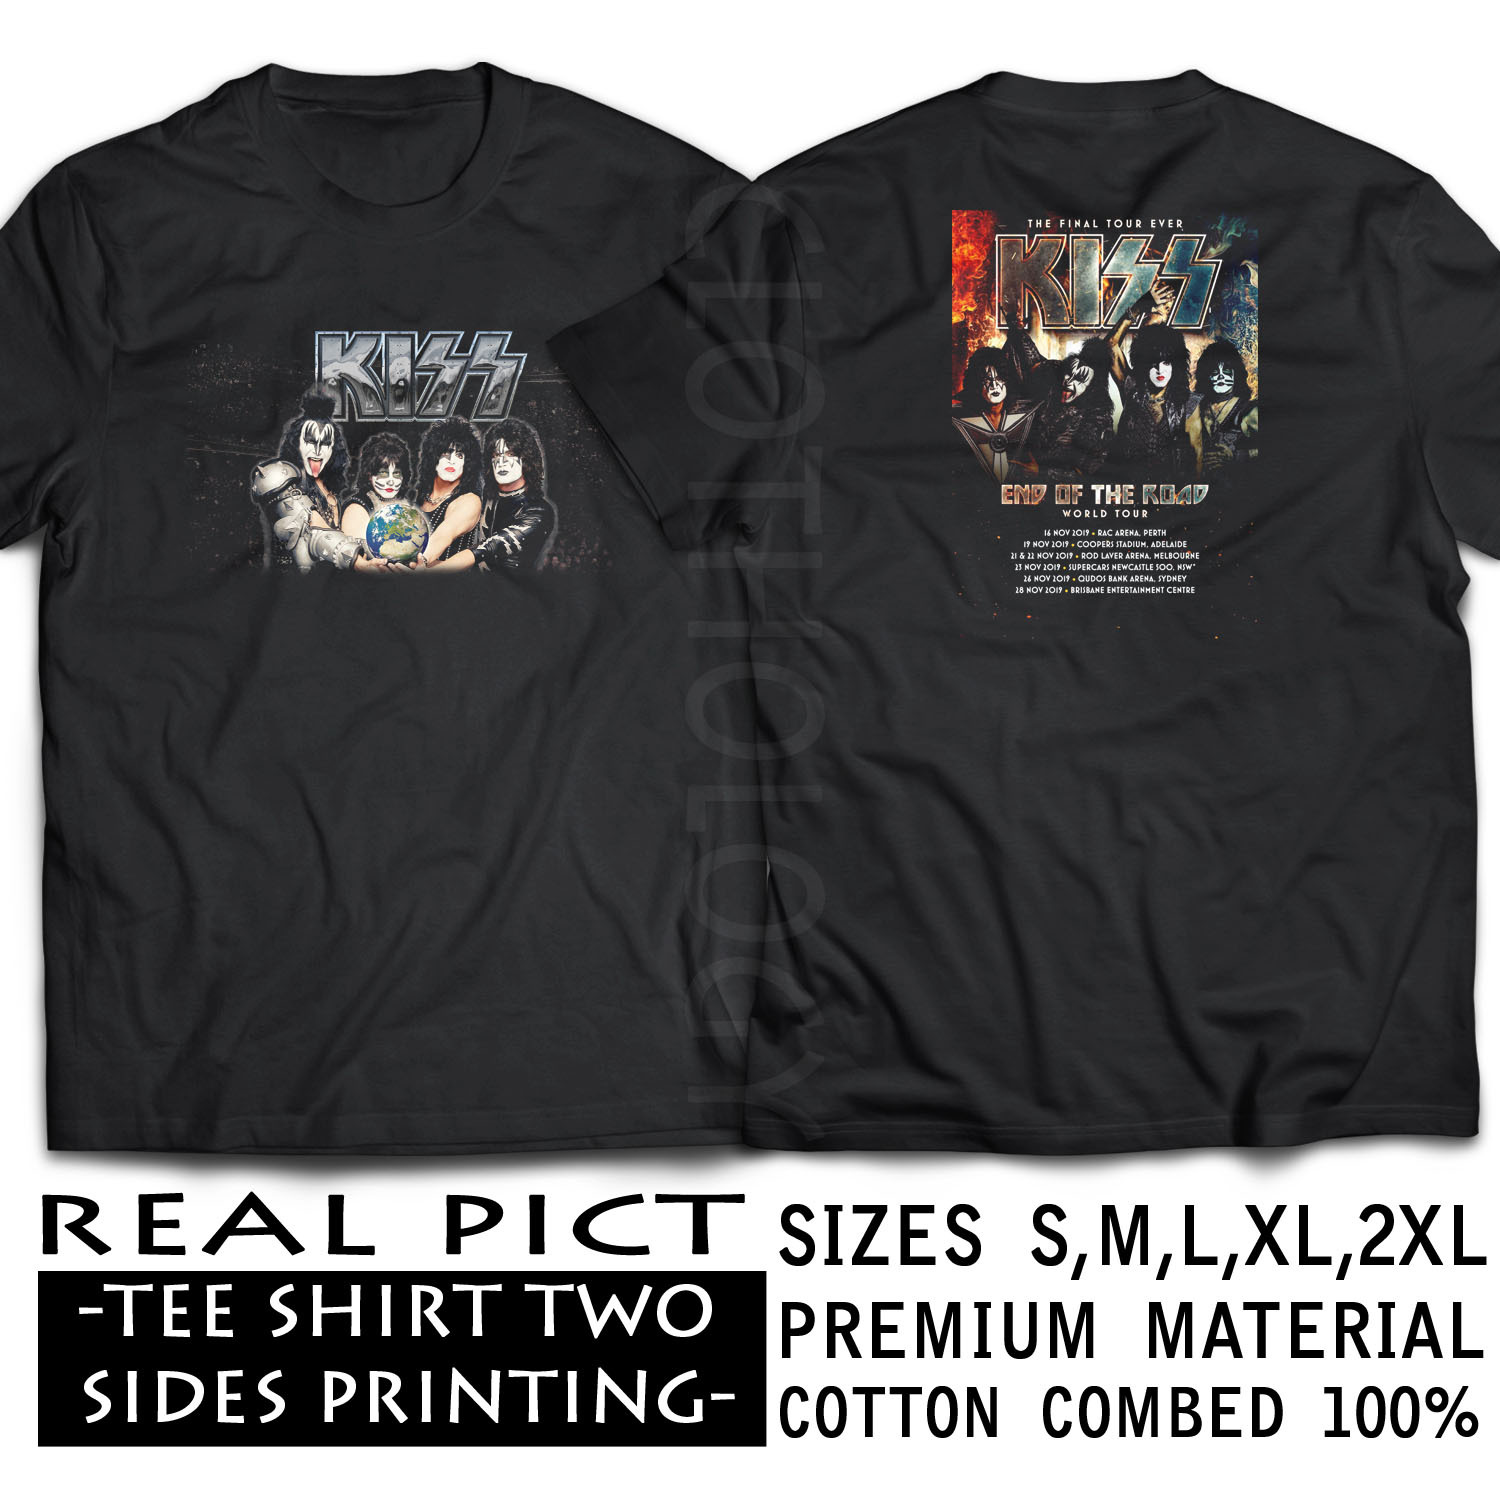 SHIRT TSHIRT KISS END OF THE ROAD TOUR 2019 BLACK PREMIUM  S-2XL SIZES RAIN13